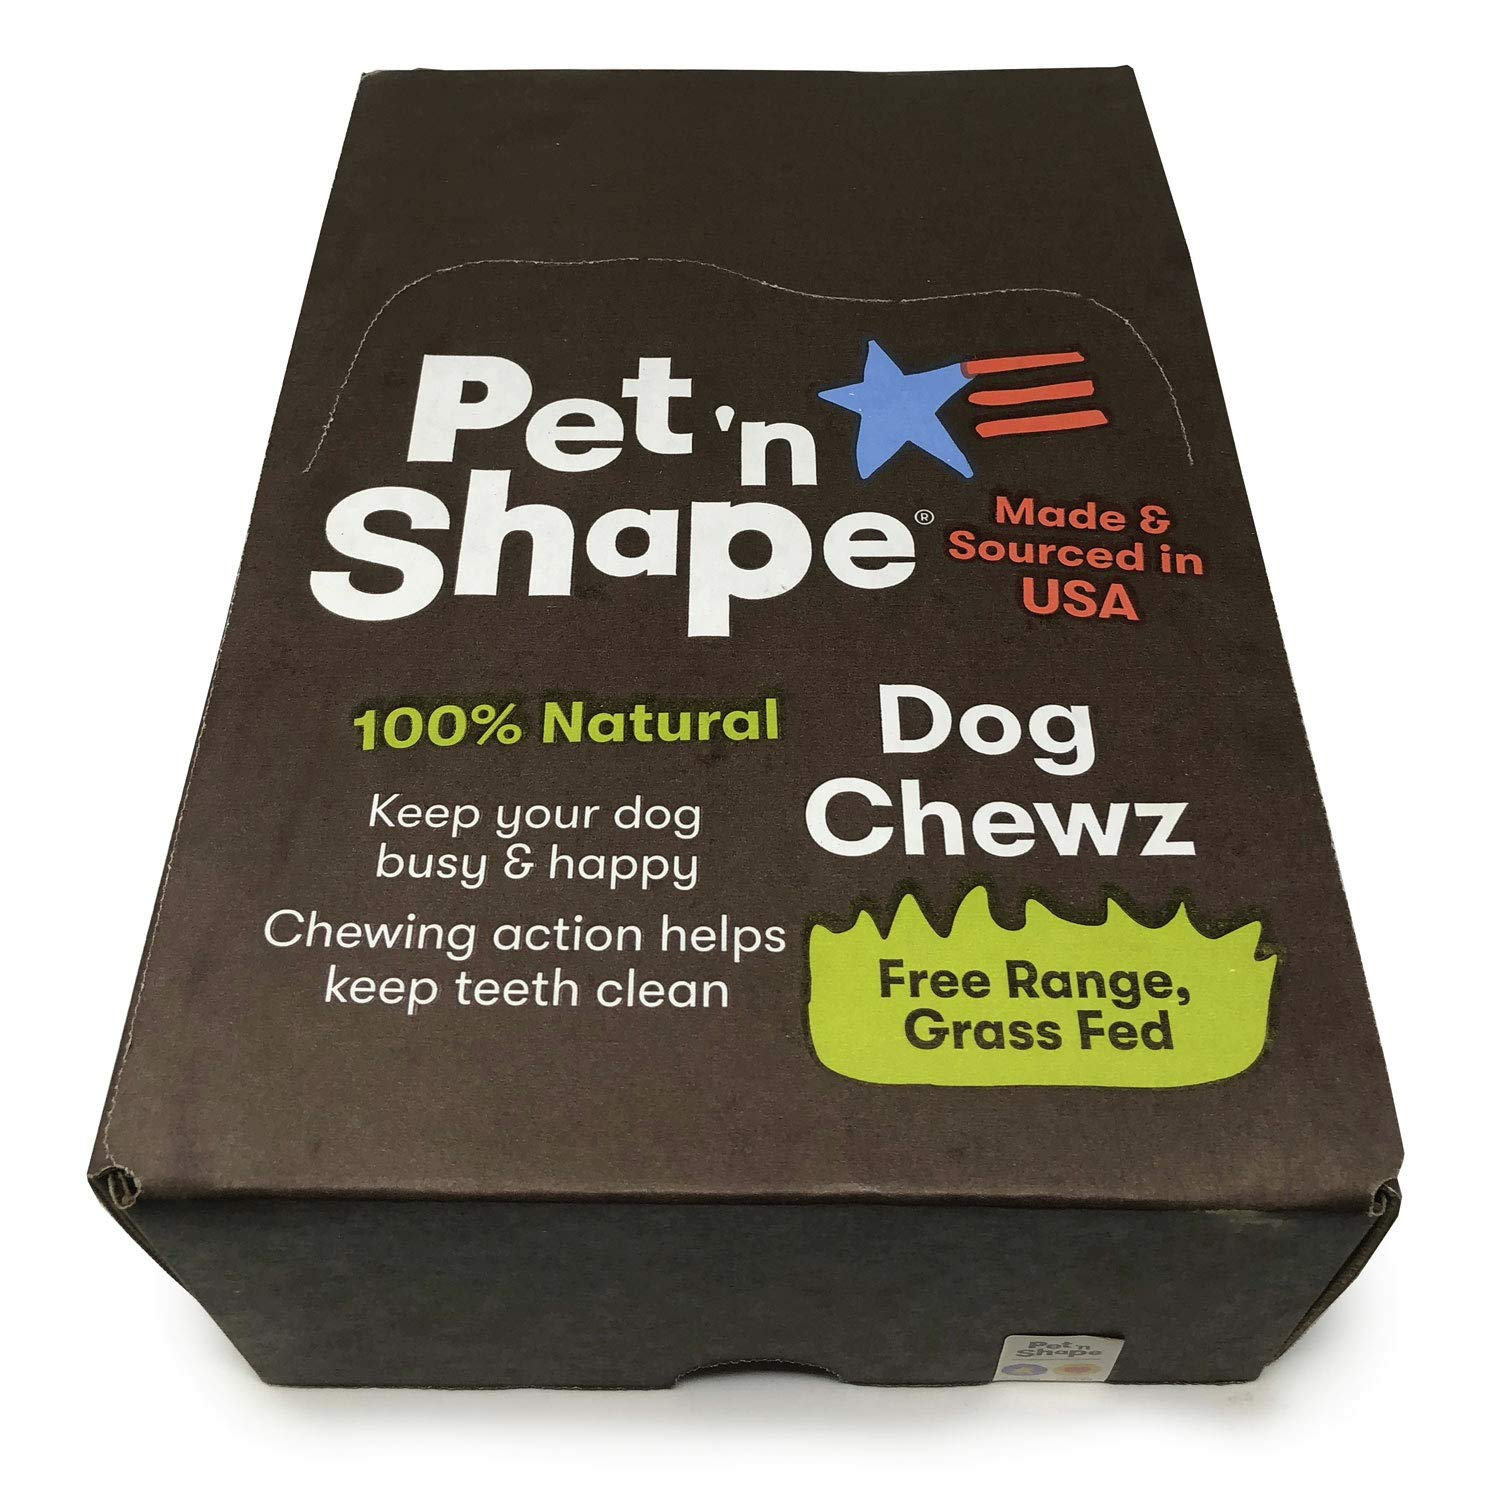 Pet 'n Shape Beef Tendon, All Natural Dog Chewz, Large, 30 Count, 2 Pack